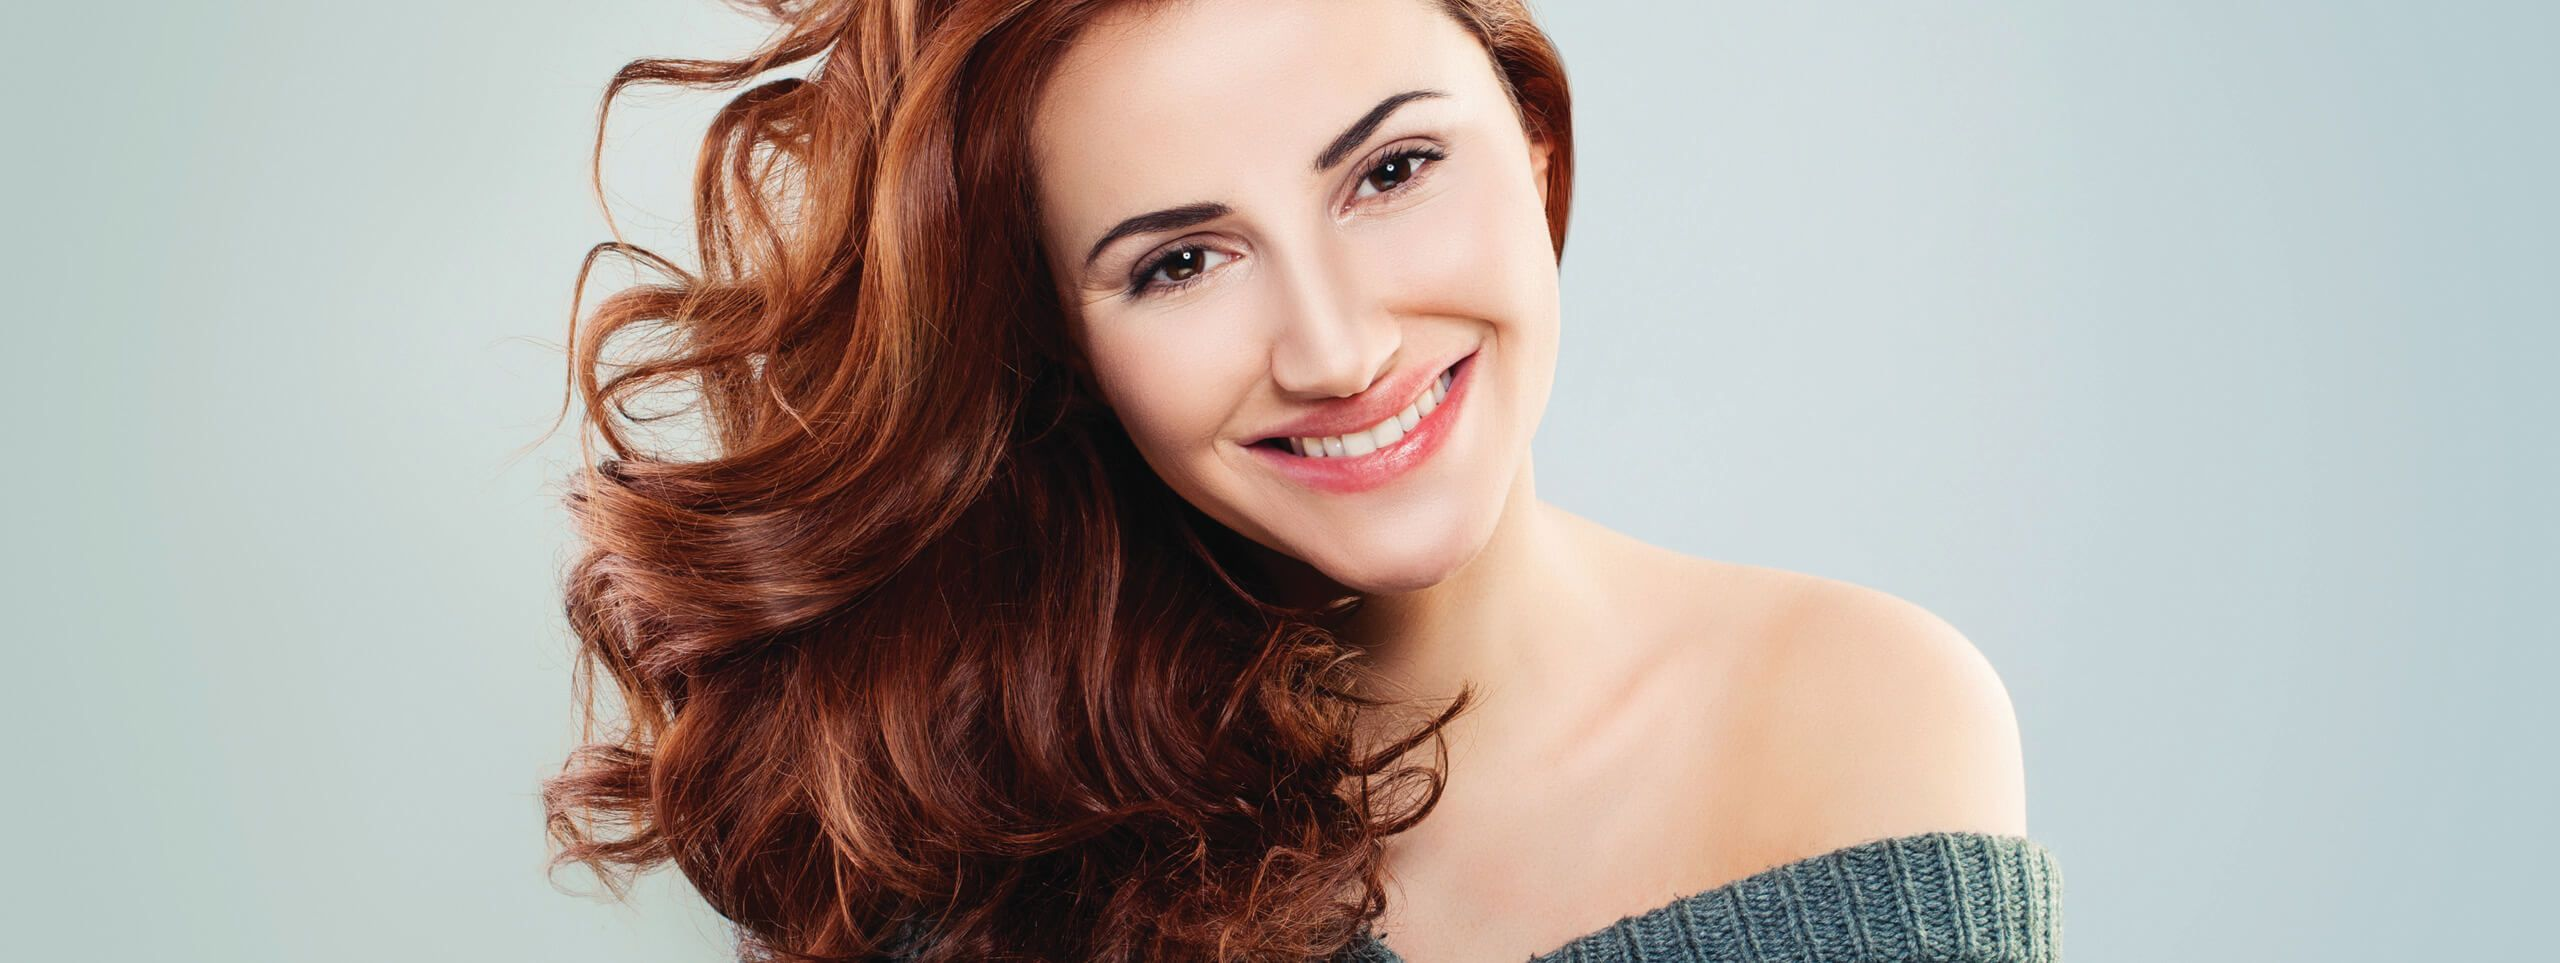 Model with short red hairstyle